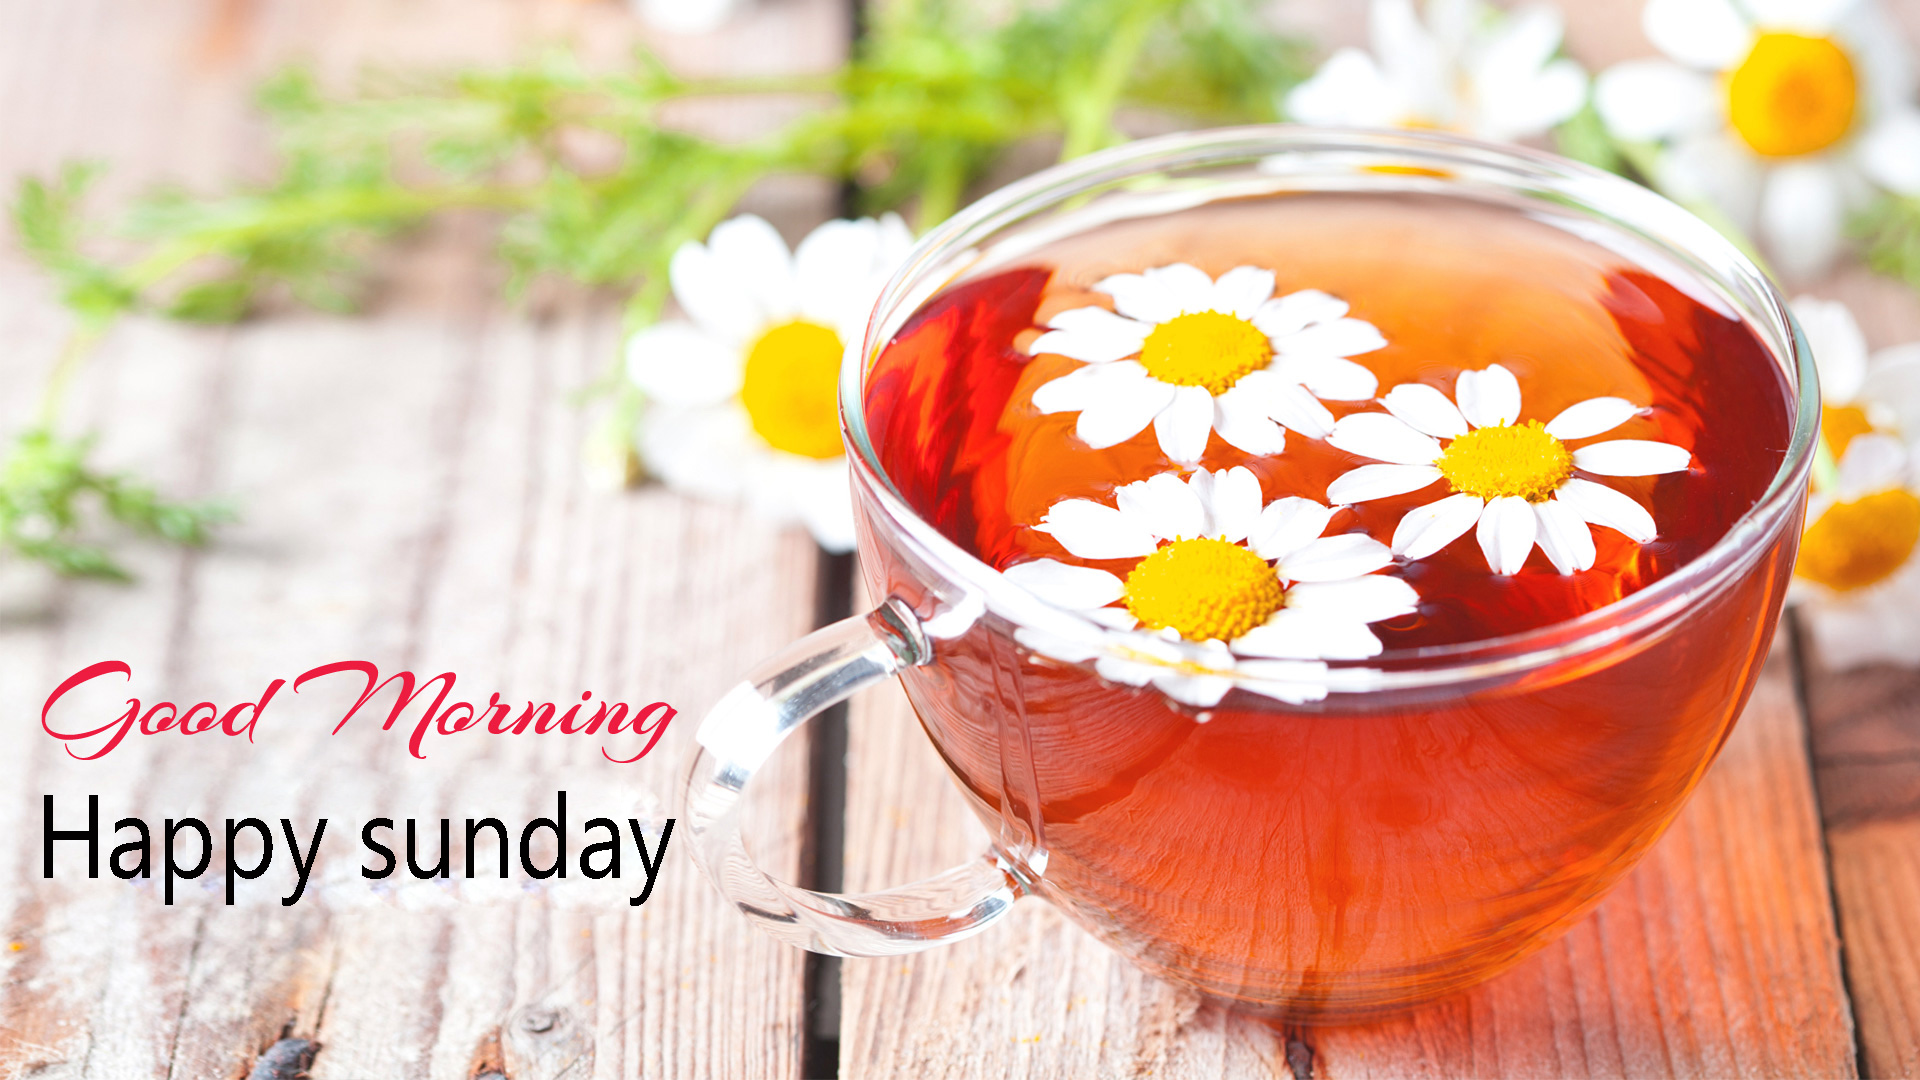 Sunday good morning Images Wallpaper for Friend